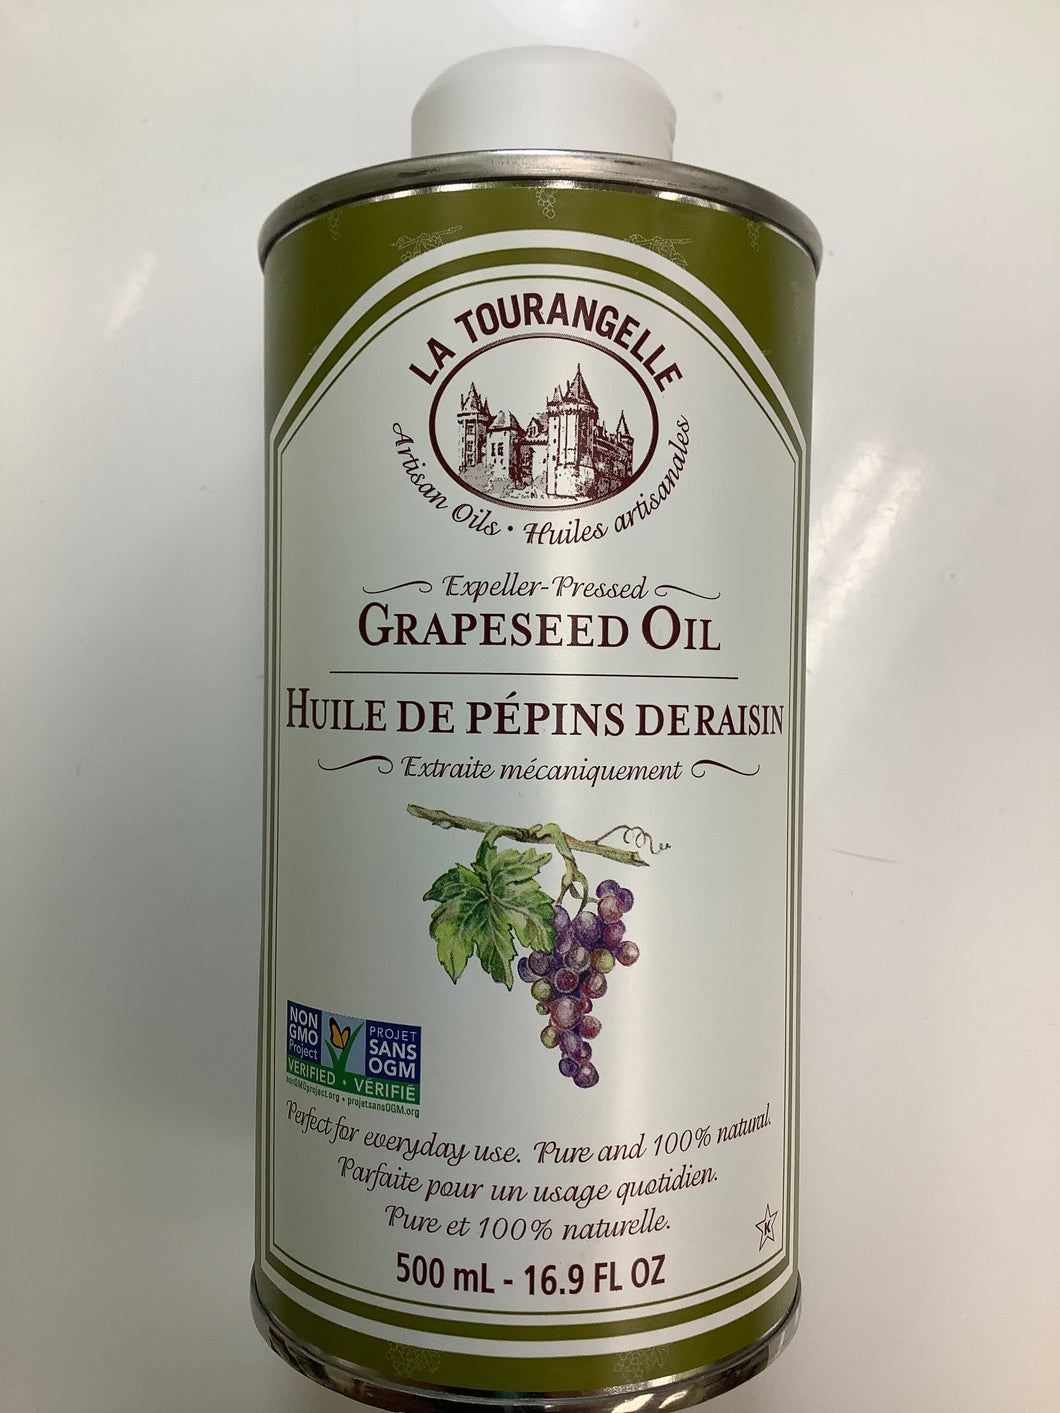 La Tourangelle Expeller-Pressed Grapeseed Oil